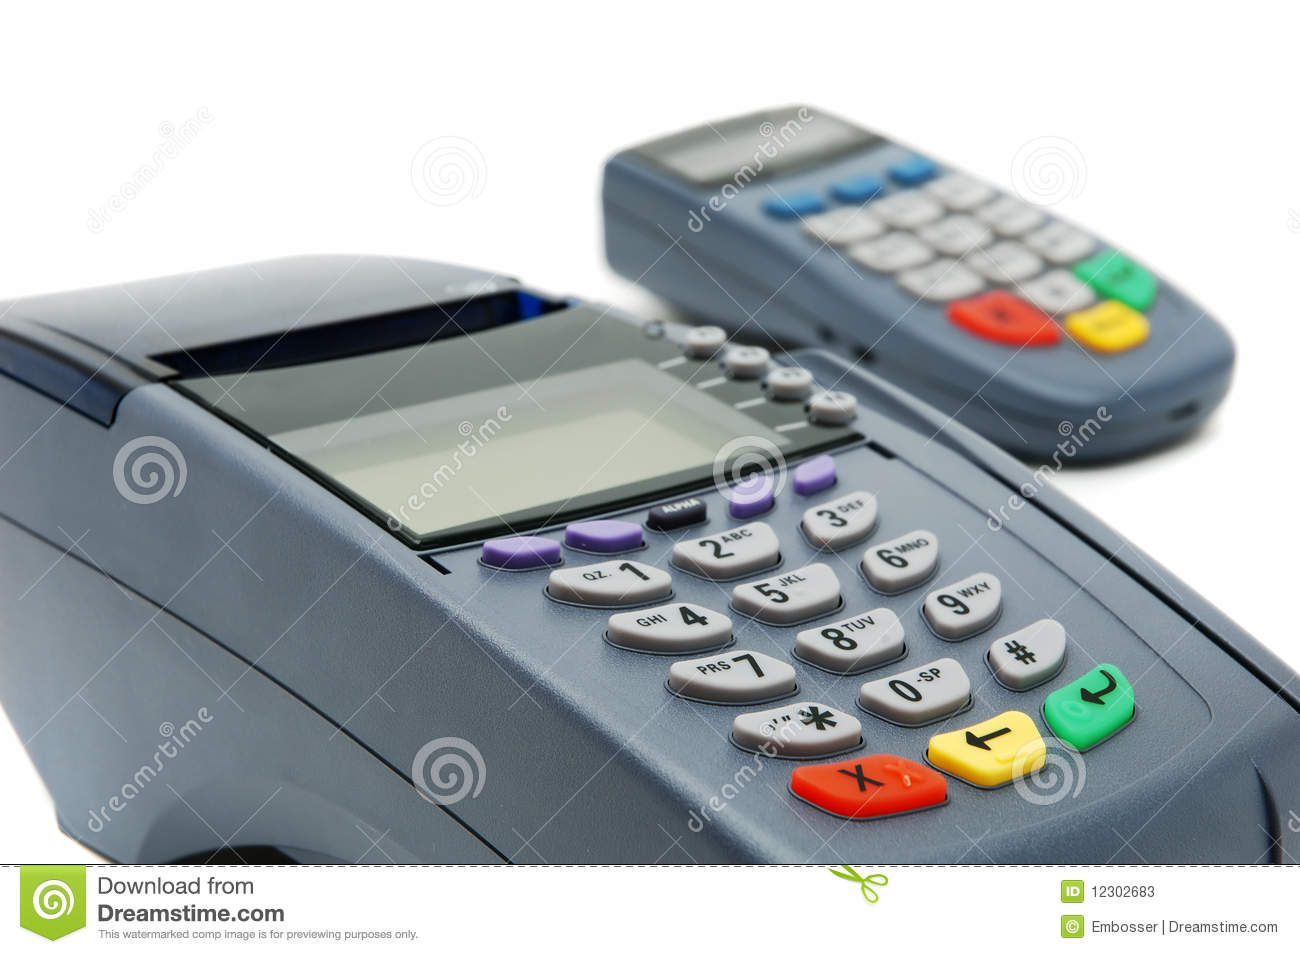 Pos terminal with pin pad stock image image of reader 12302683 download pos terminal with pin pad stock image image of reader 12302683 publicscrutiny Gallery